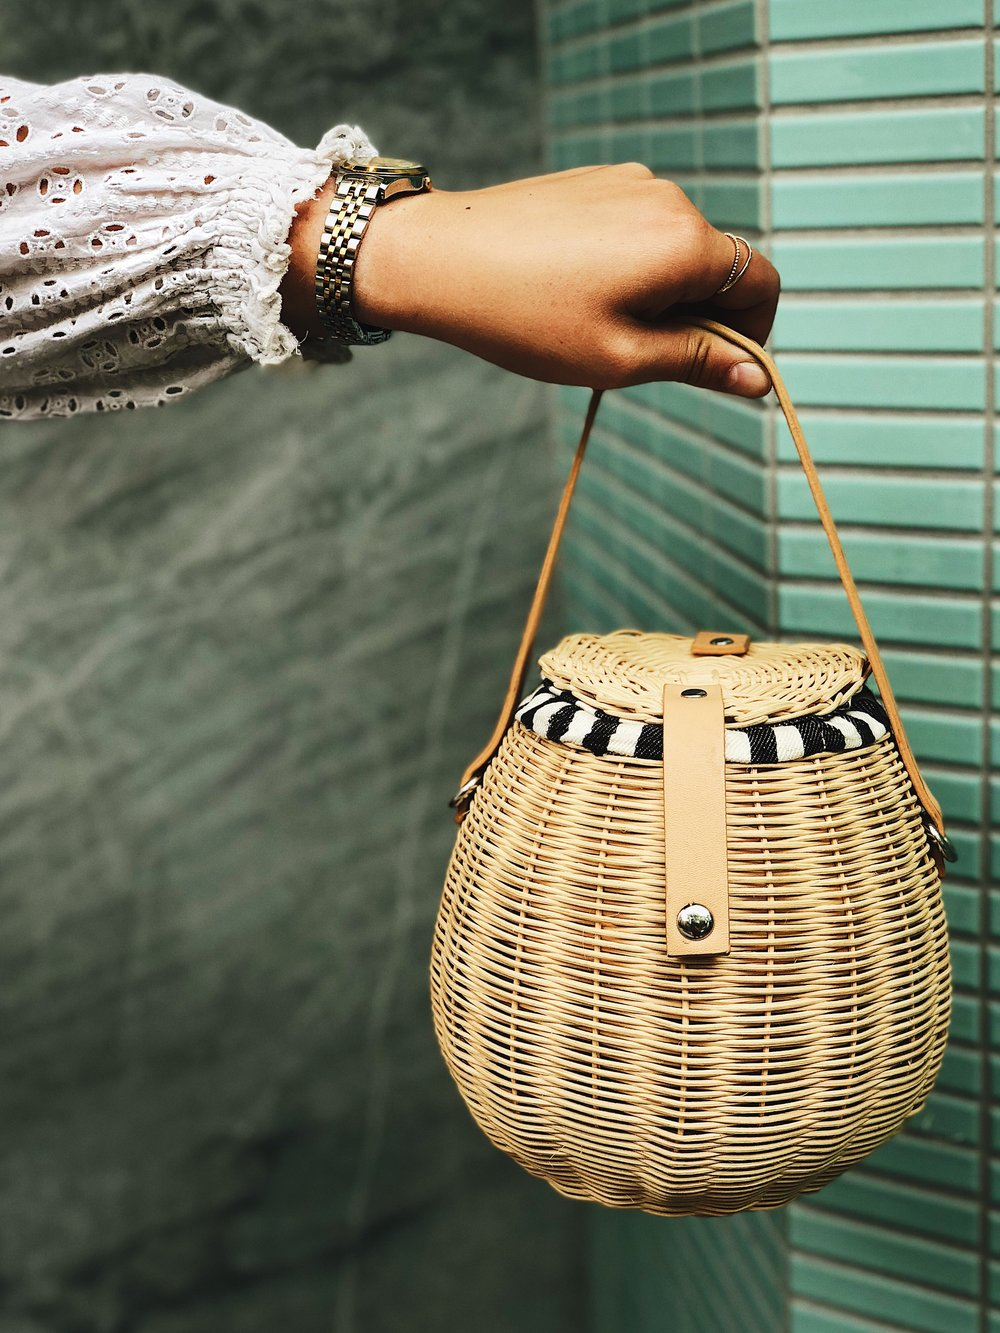 Summer trend to watch: - For the third summer in a row, basket bags aren't going anywhere. Wear the oversized version to the beach, a cute bucket version for strolling around the city, or a chic shoulder bag version for a night out.